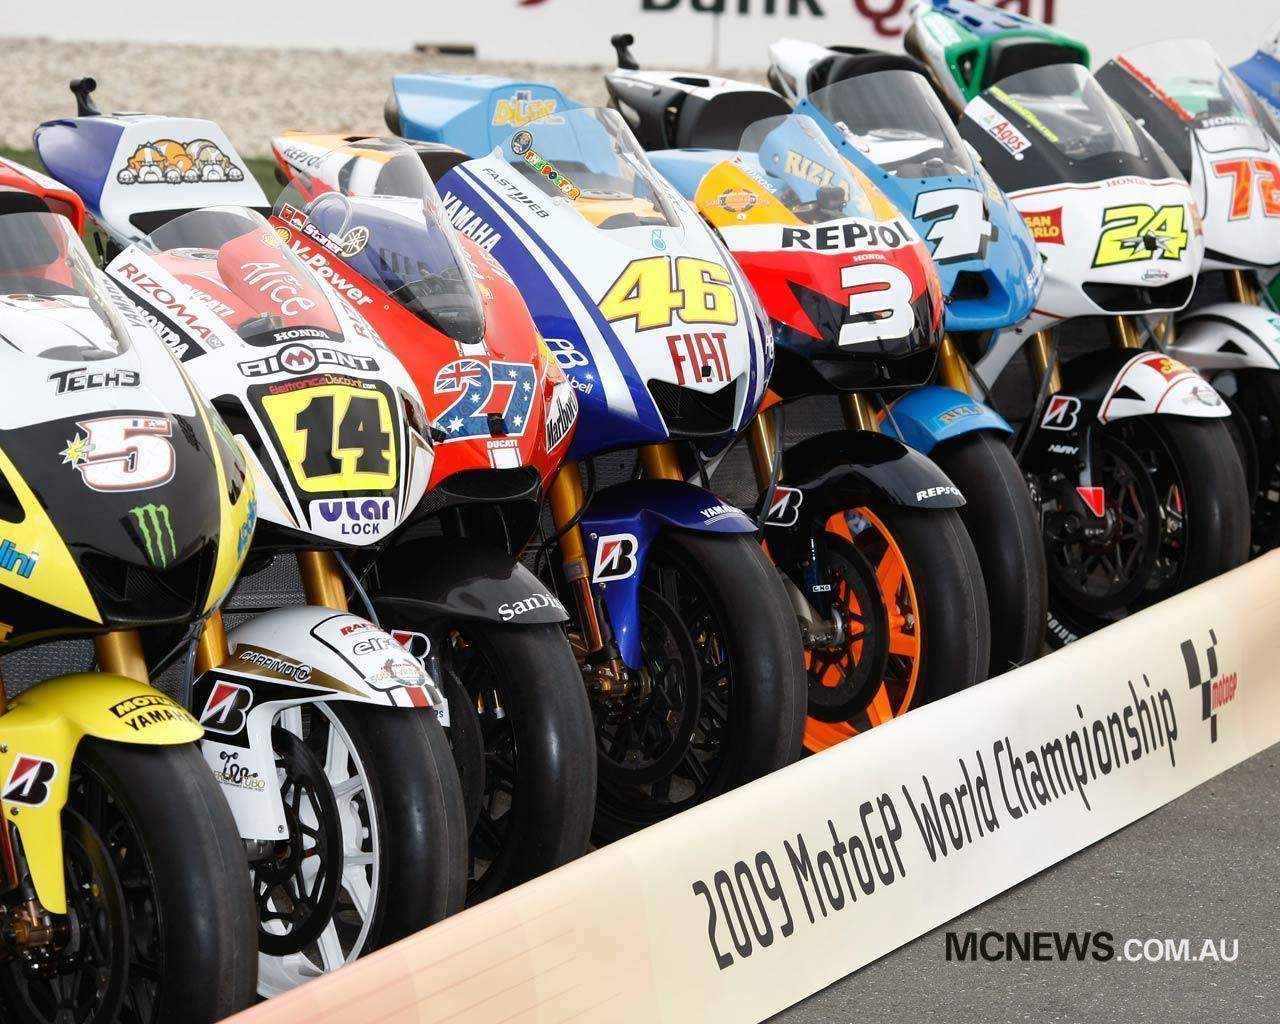 MotoGP Wallpapers for Android Free Download on MoboMarket